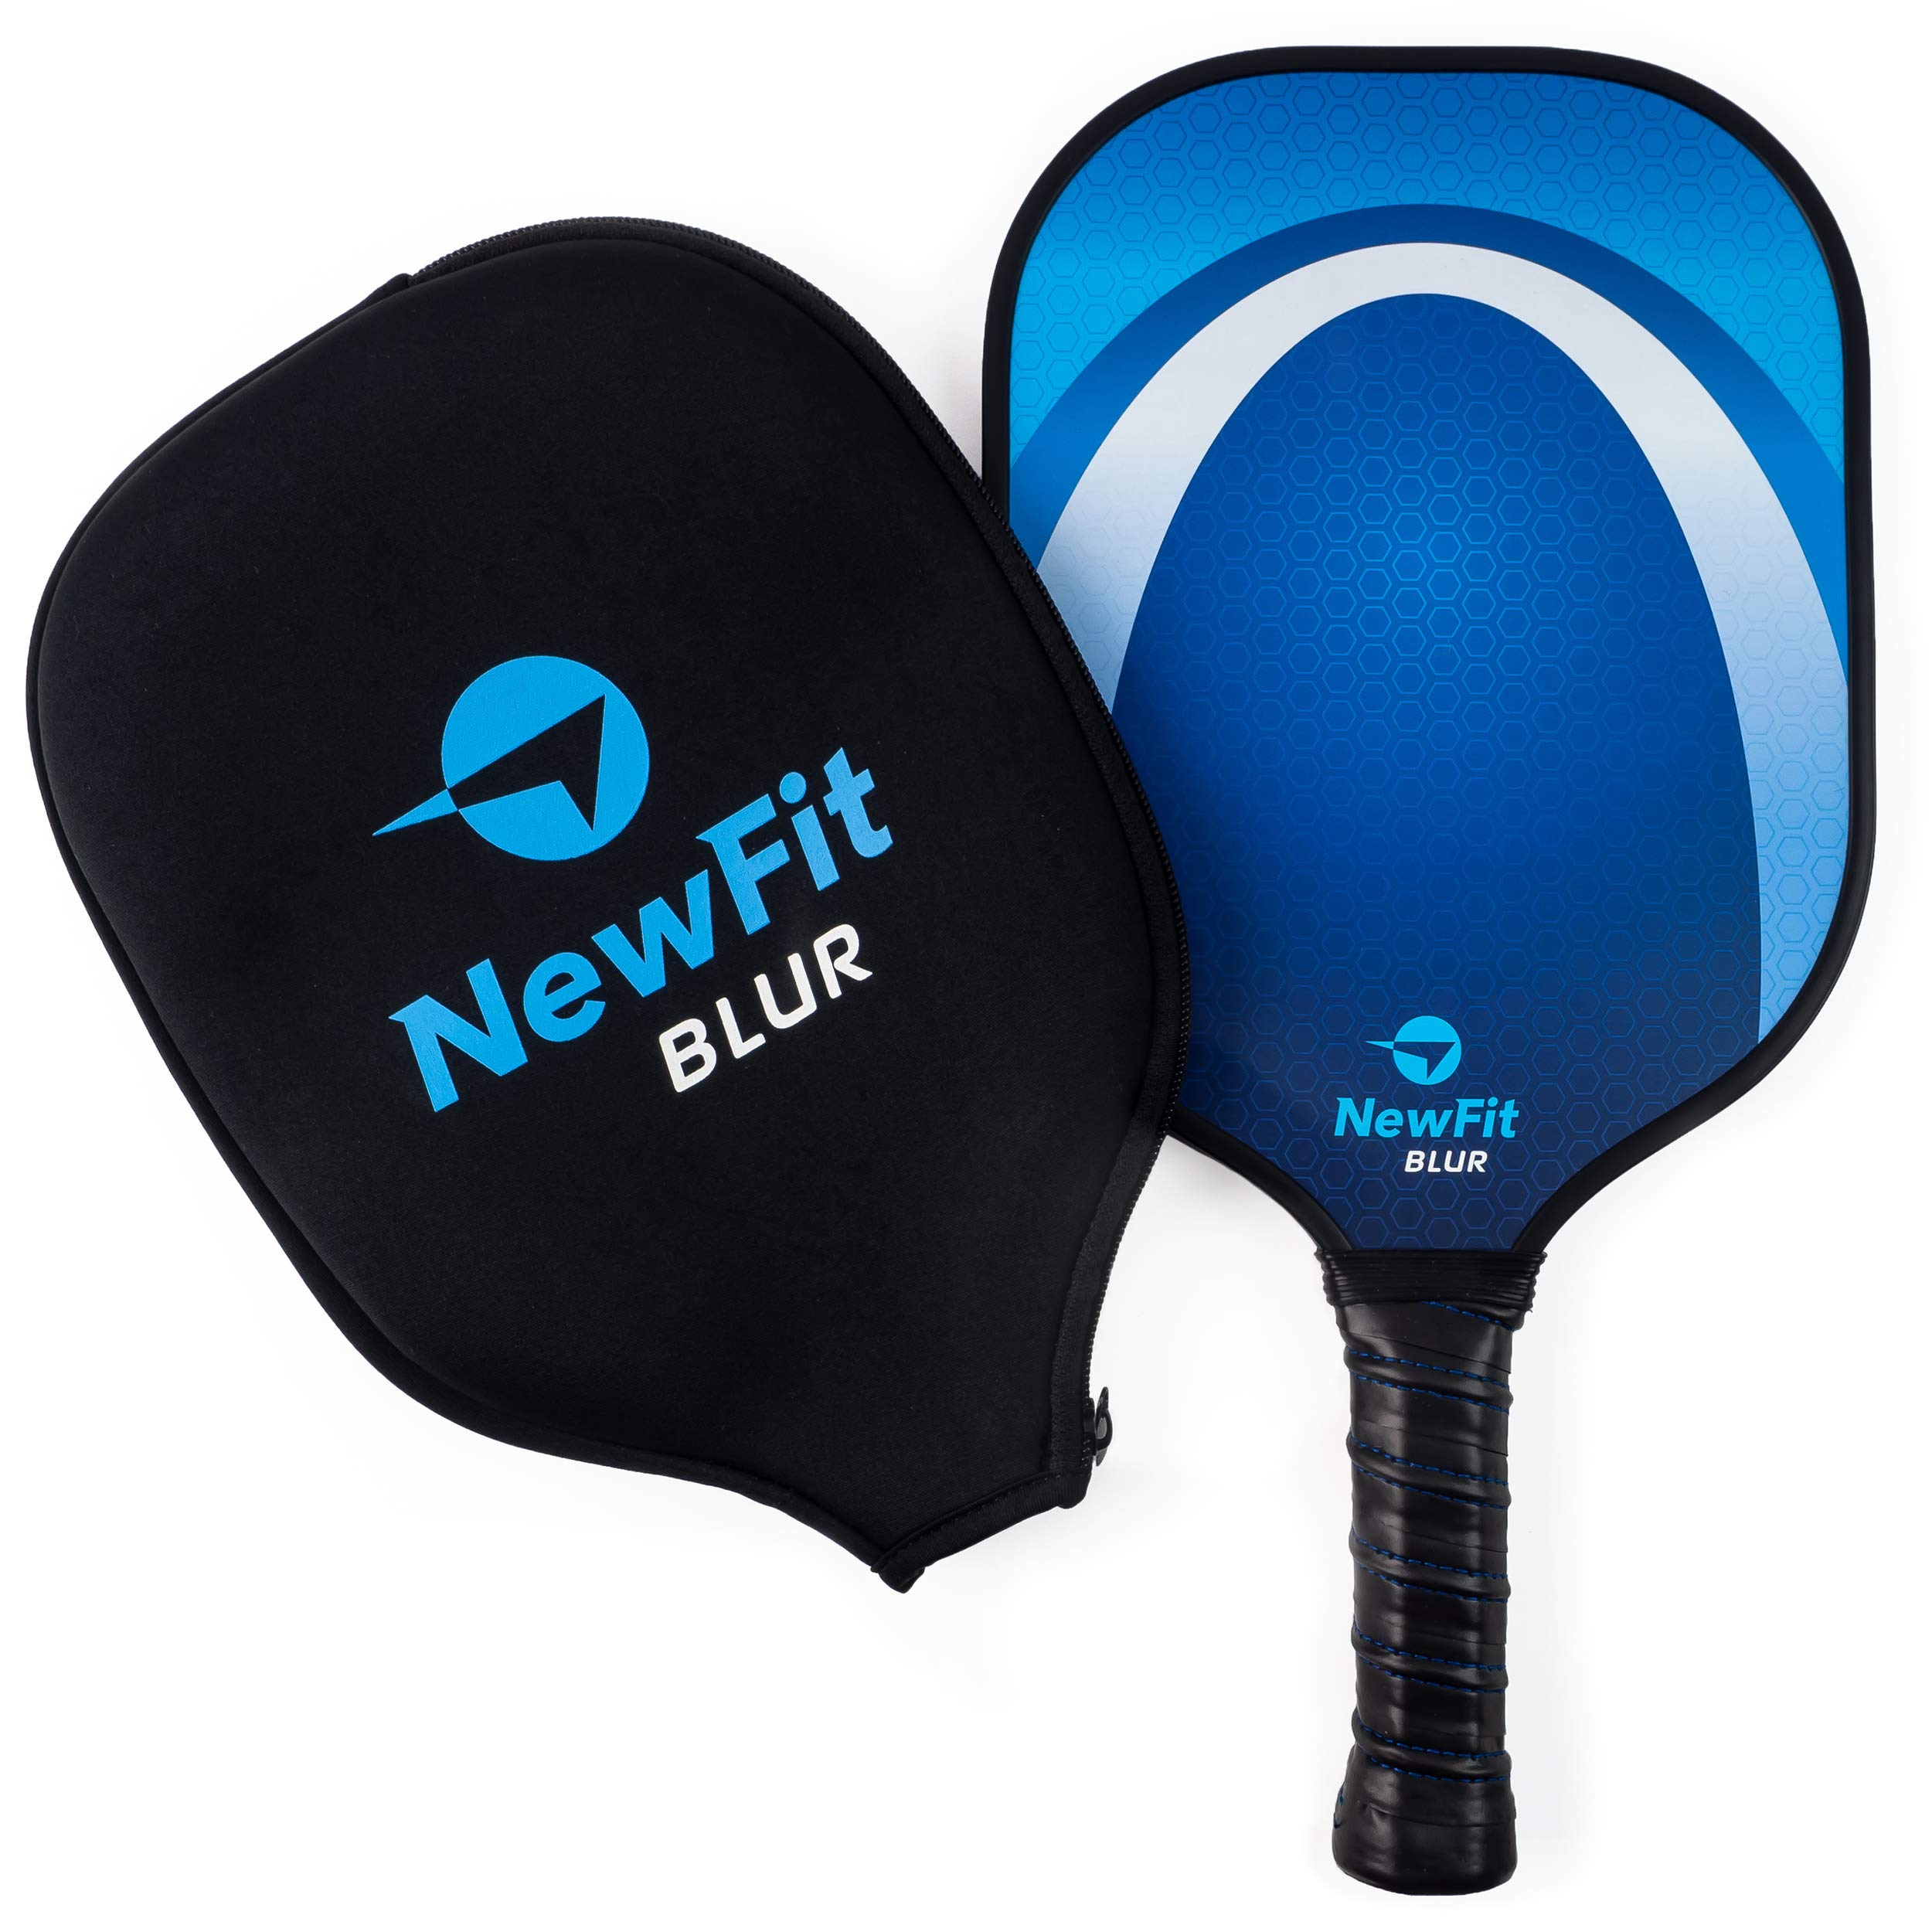 NewFit Blur Pickleball Paddle - USAPA Approved - Graphite Face & Polymer Core for a Quiet and Light Racket (Blue Single) by NewFit Sports